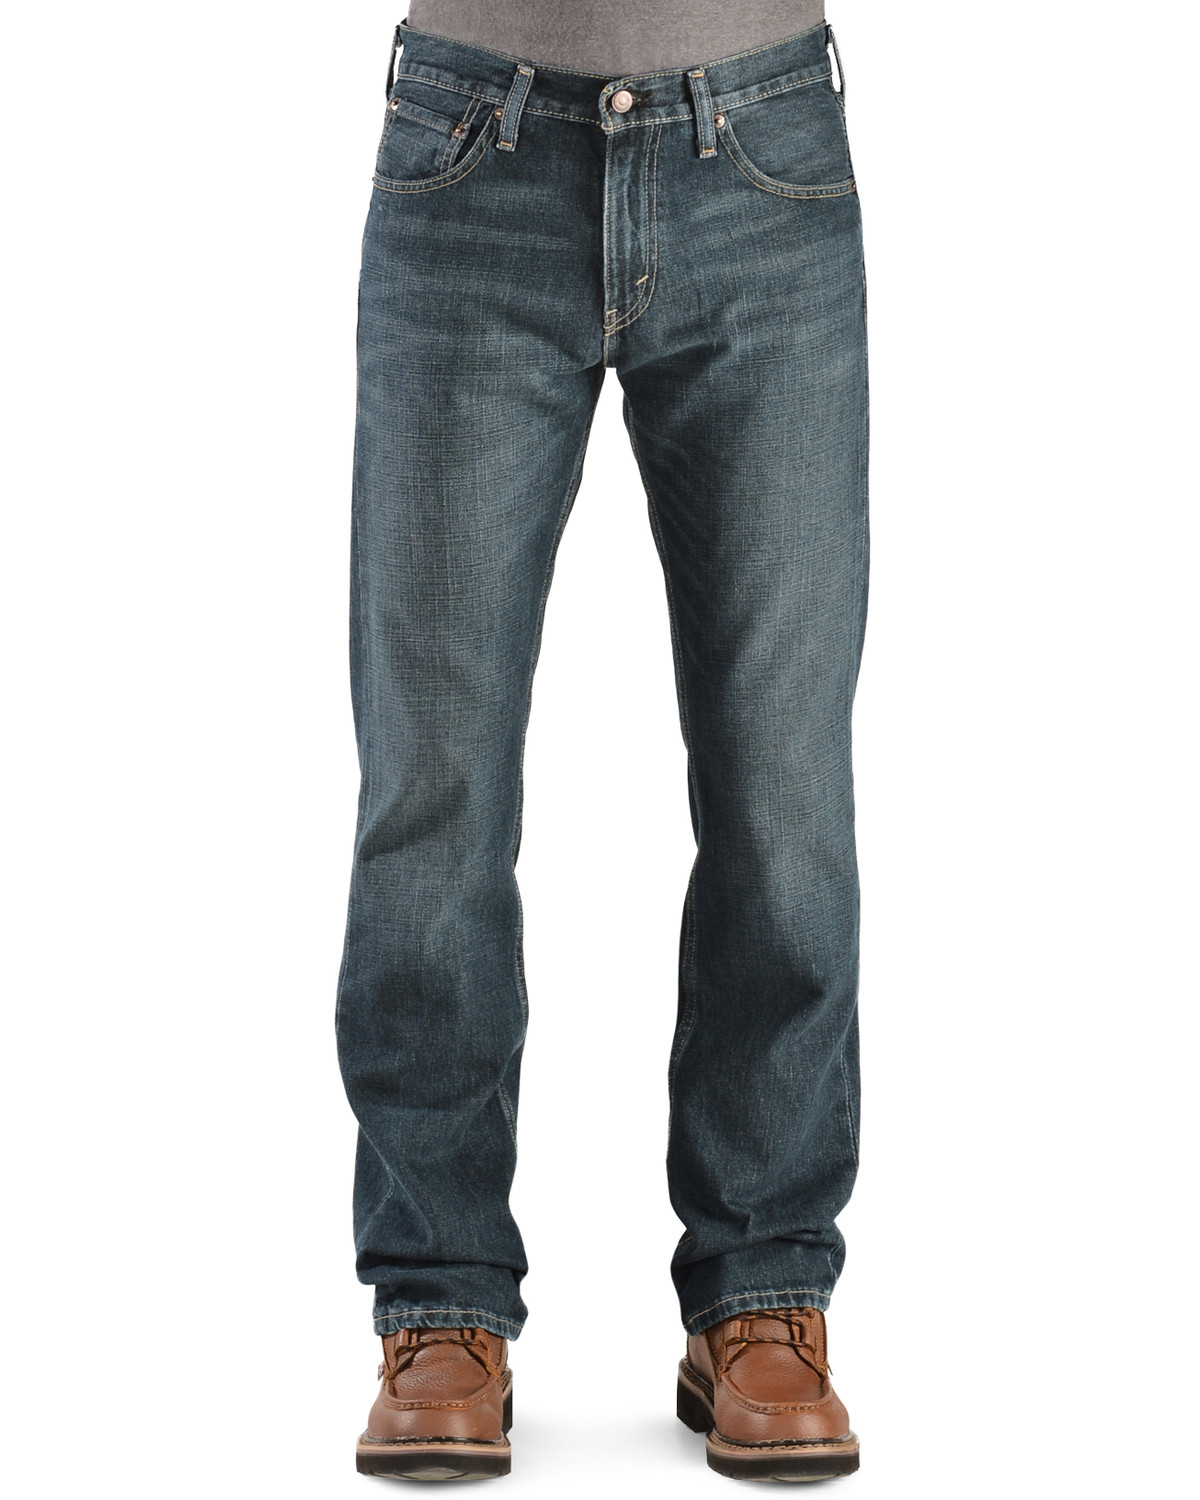 Find great deals on eBay for levis boot cut. Shop with confidence.